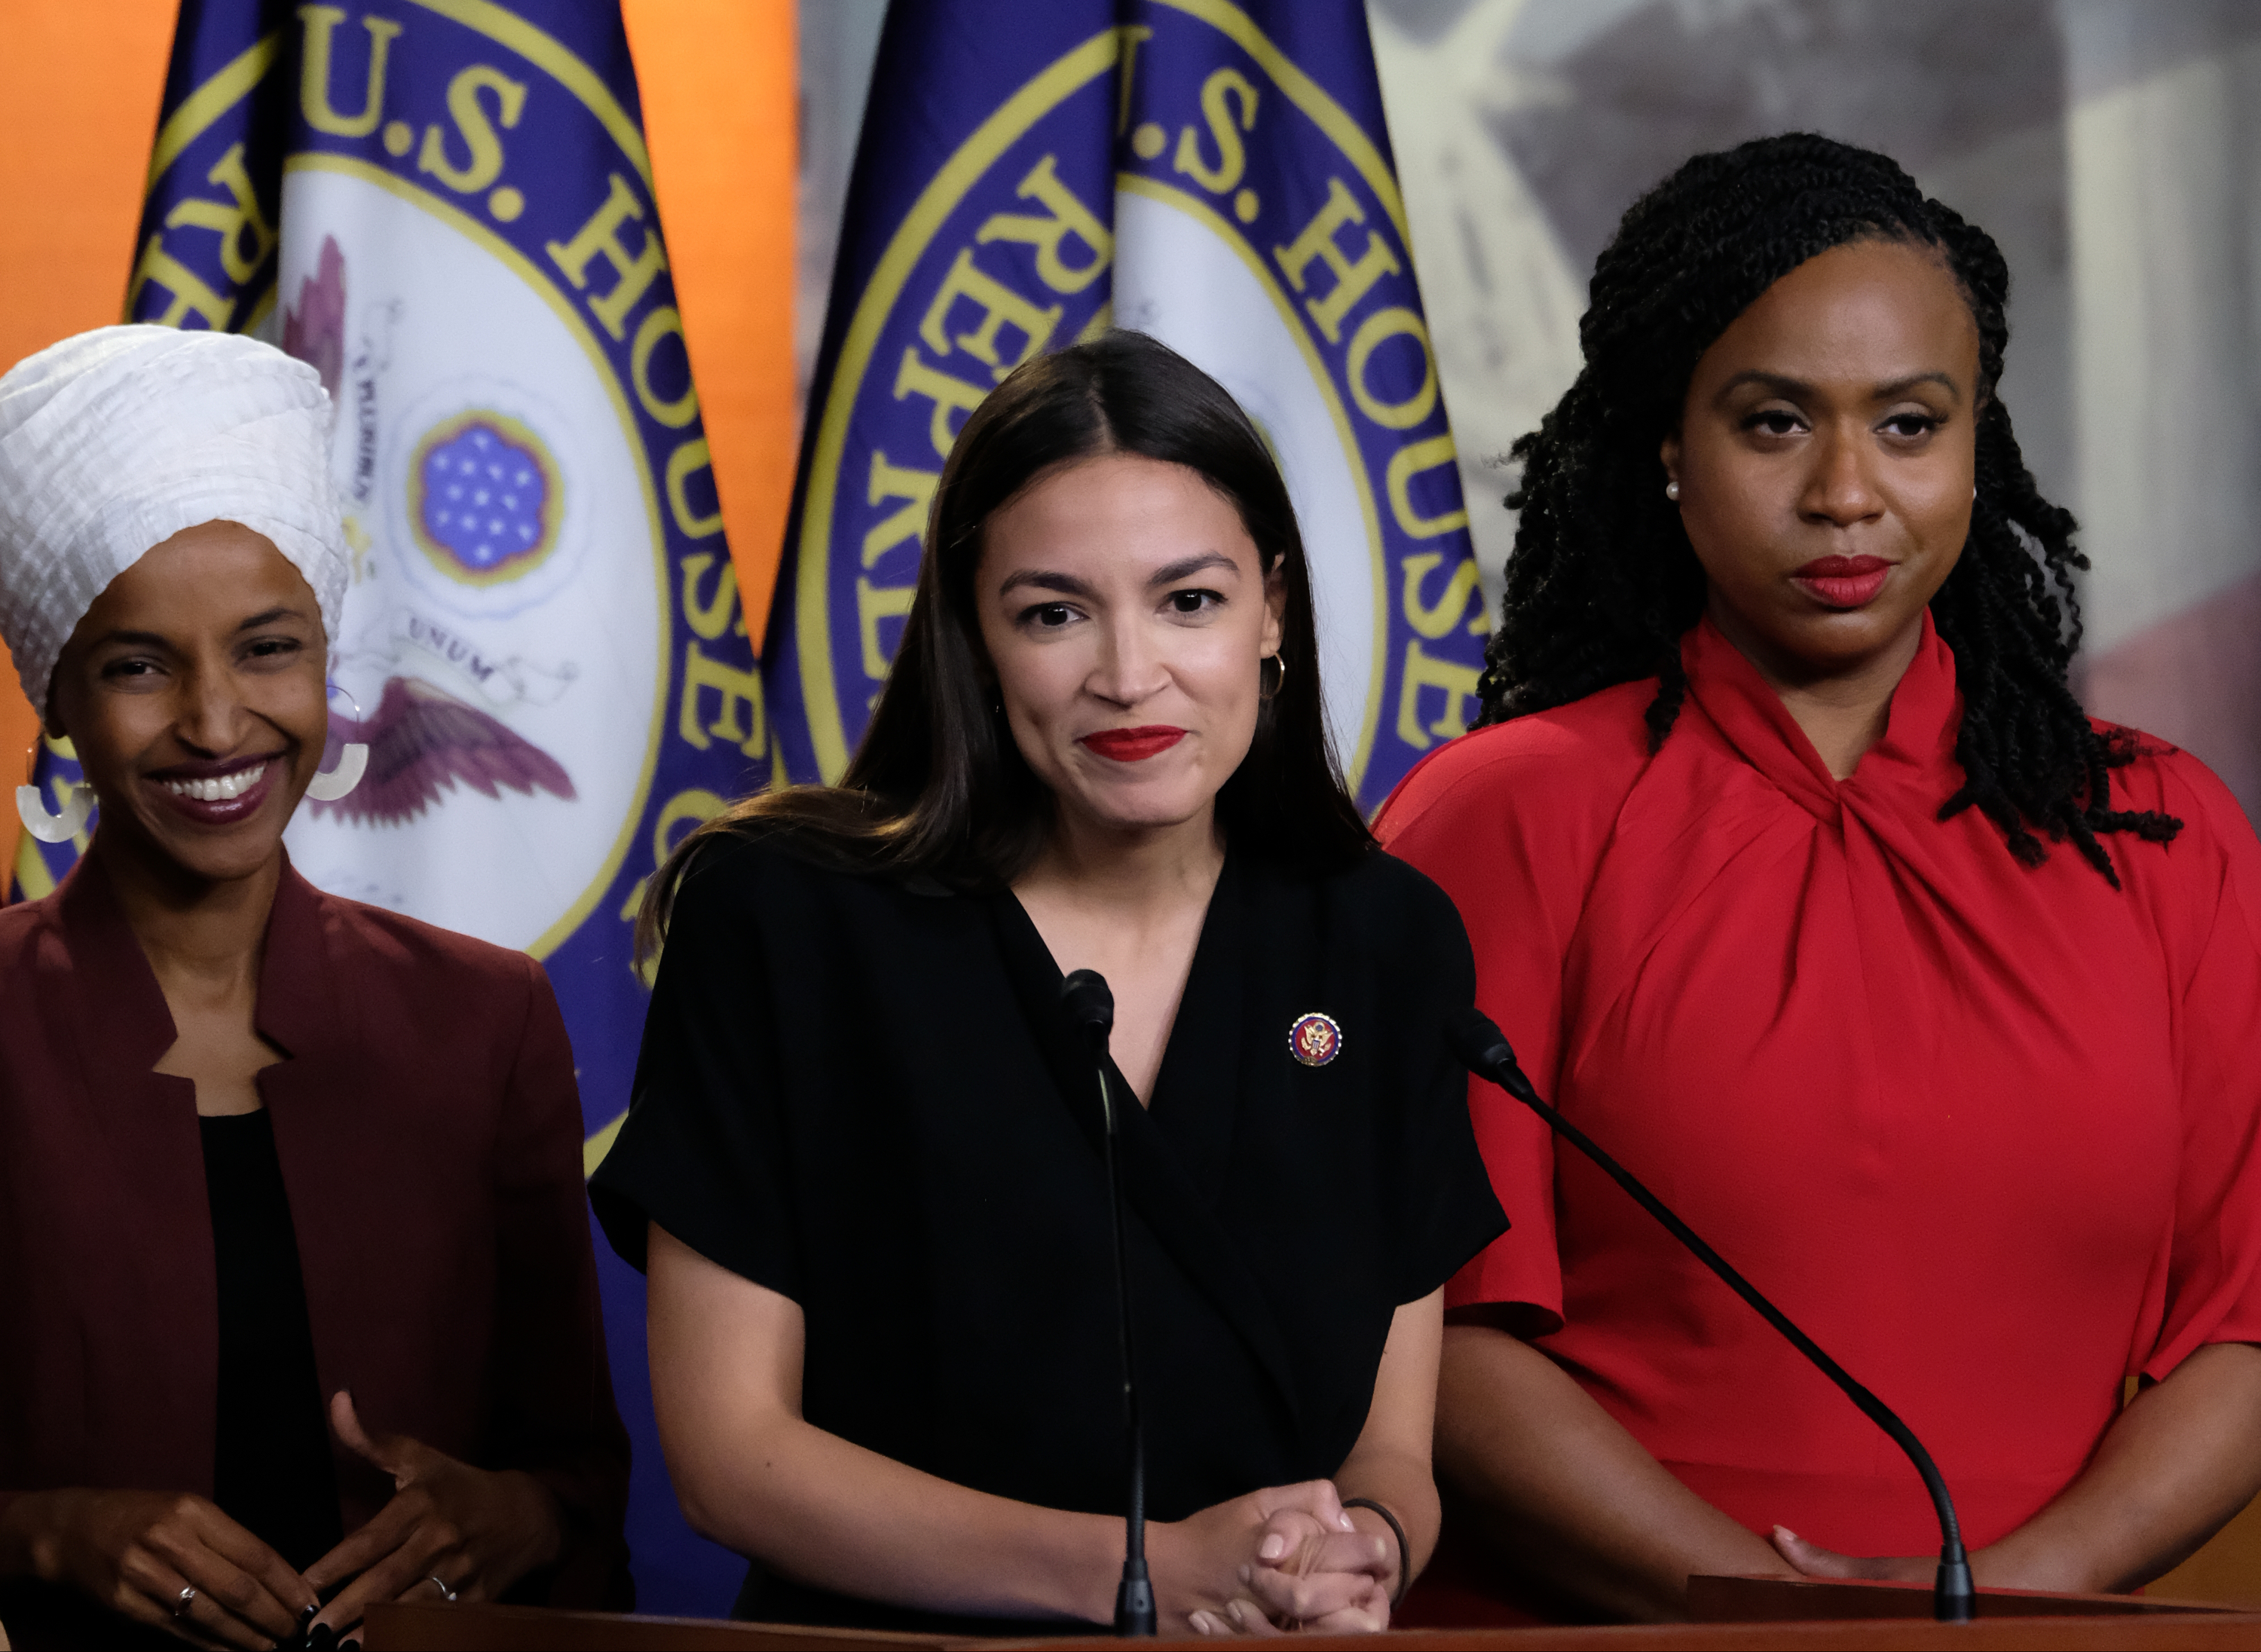 """WASHINGTON, DC - JULY 15: U.S. Rep. Alexandria Ocasio-Cortez (D-NY) pauses while speaking as Reps. Ilhan Omar (D-MN) and Ayanna Pressley (D-MA) listen during a news conference at the U.S. Capitol on July 15, 2019 in Washington, DC. President Donald Trump stepped up his attacks on the four progressive Democratic congresswomen, saying that if they're not happy in the U.S. """"they can leave."""" (Photo by Alex Wroblewski/Getty Images)"""